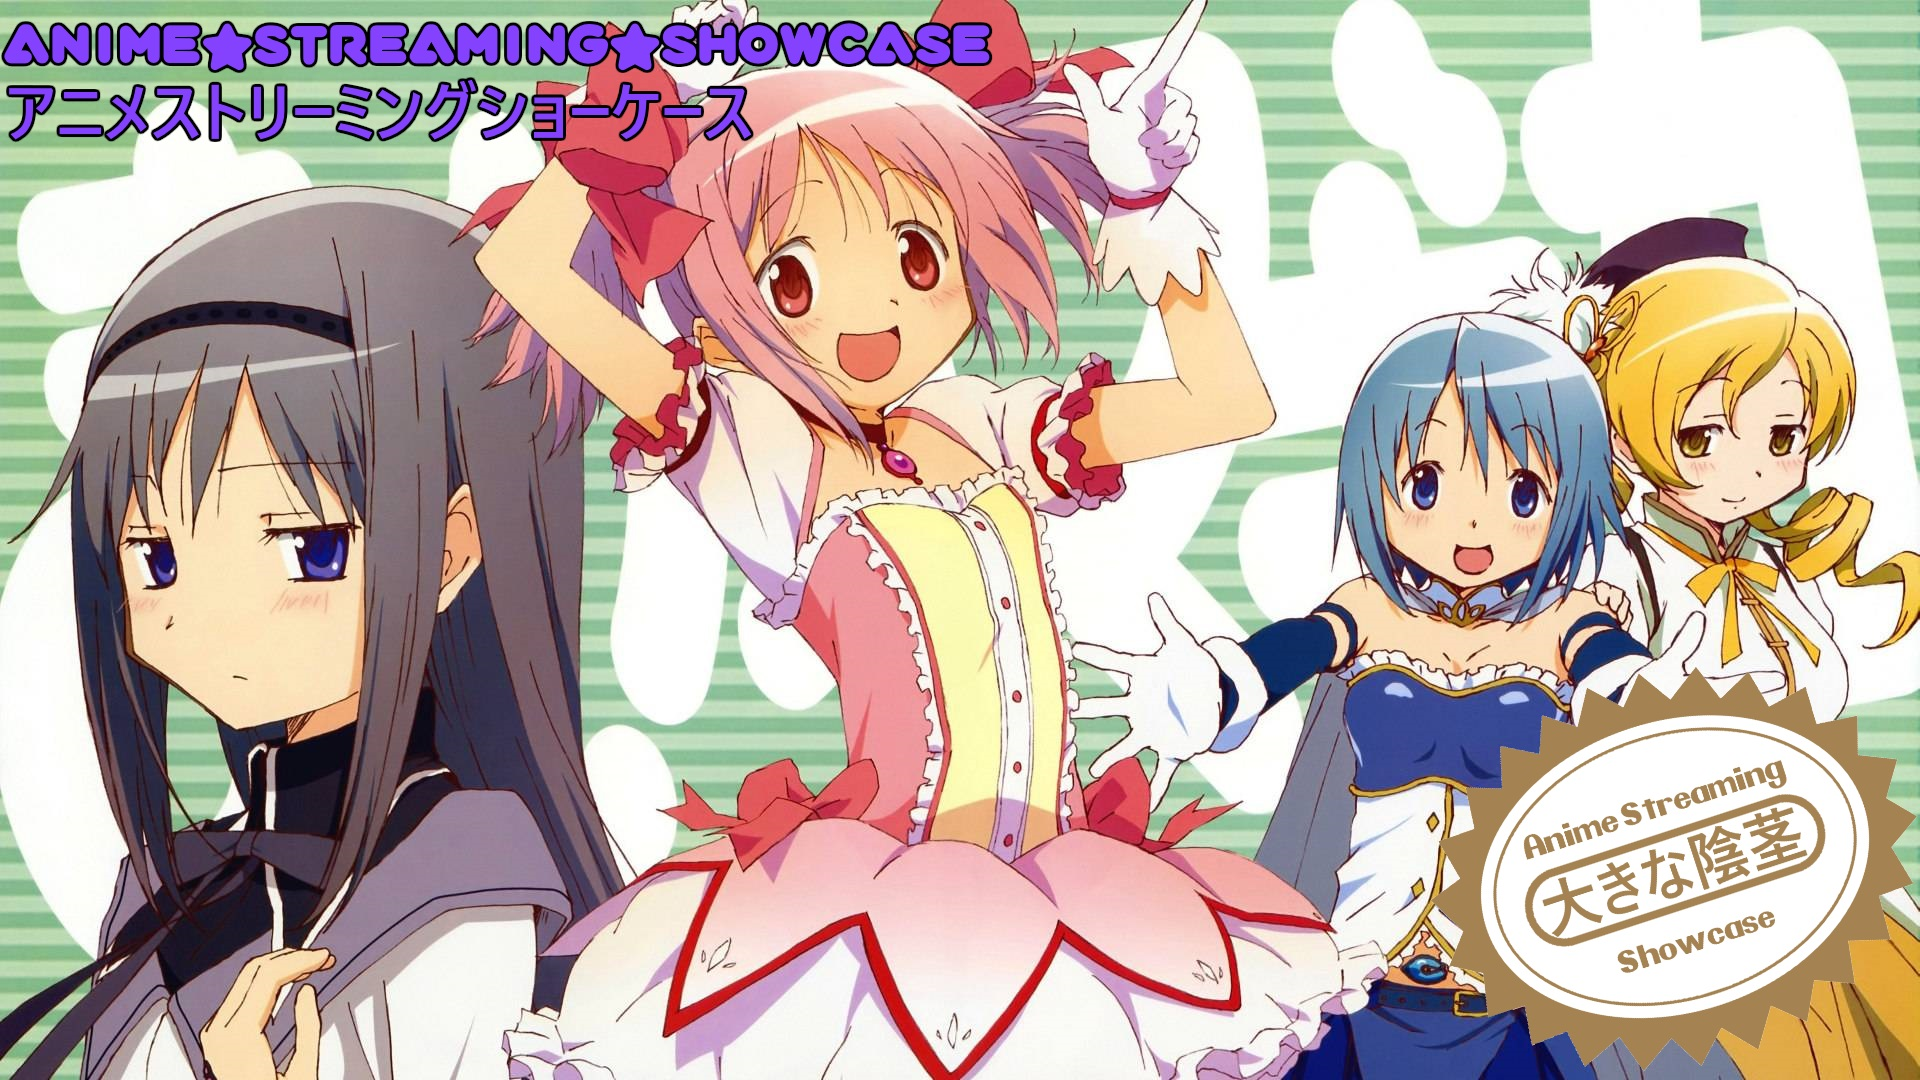 Madoka★Magica, anime,anime streaming showcase, A.S.S., youtube, puella magi madoka magica, video,